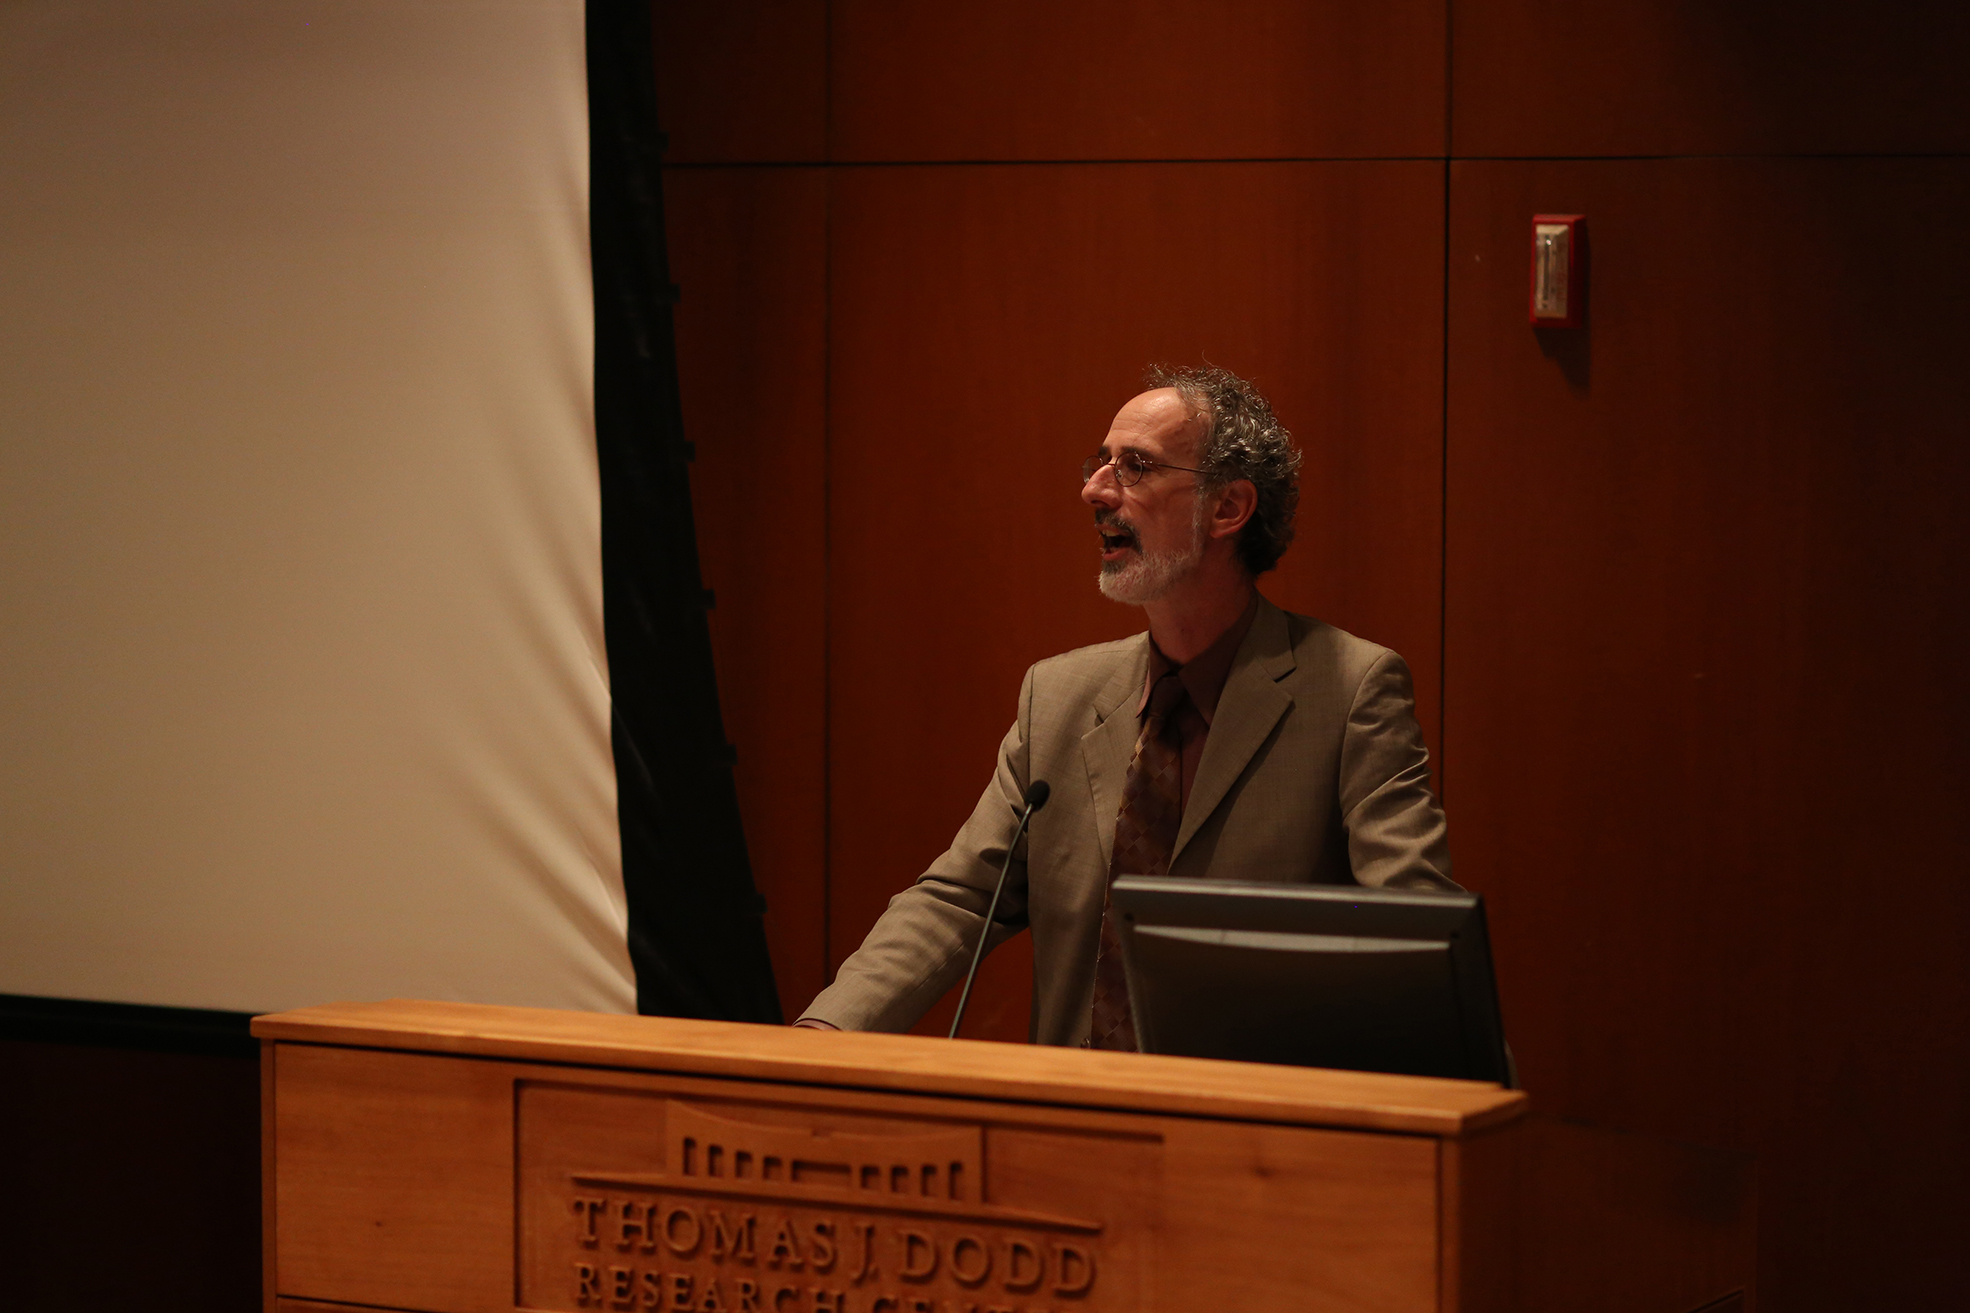 California Pacific Institute President Peter Gleick speaks during his lecture at the Thomas J. Dodd Center in Storrs, Connecticut on Tuesday, Oct. 20, 2015. Gleick discussed the importance of acknowledging the human right to water around the world and outlined the history of how water became a human rights issue. (Jackson Haigis/The Daily Campus)